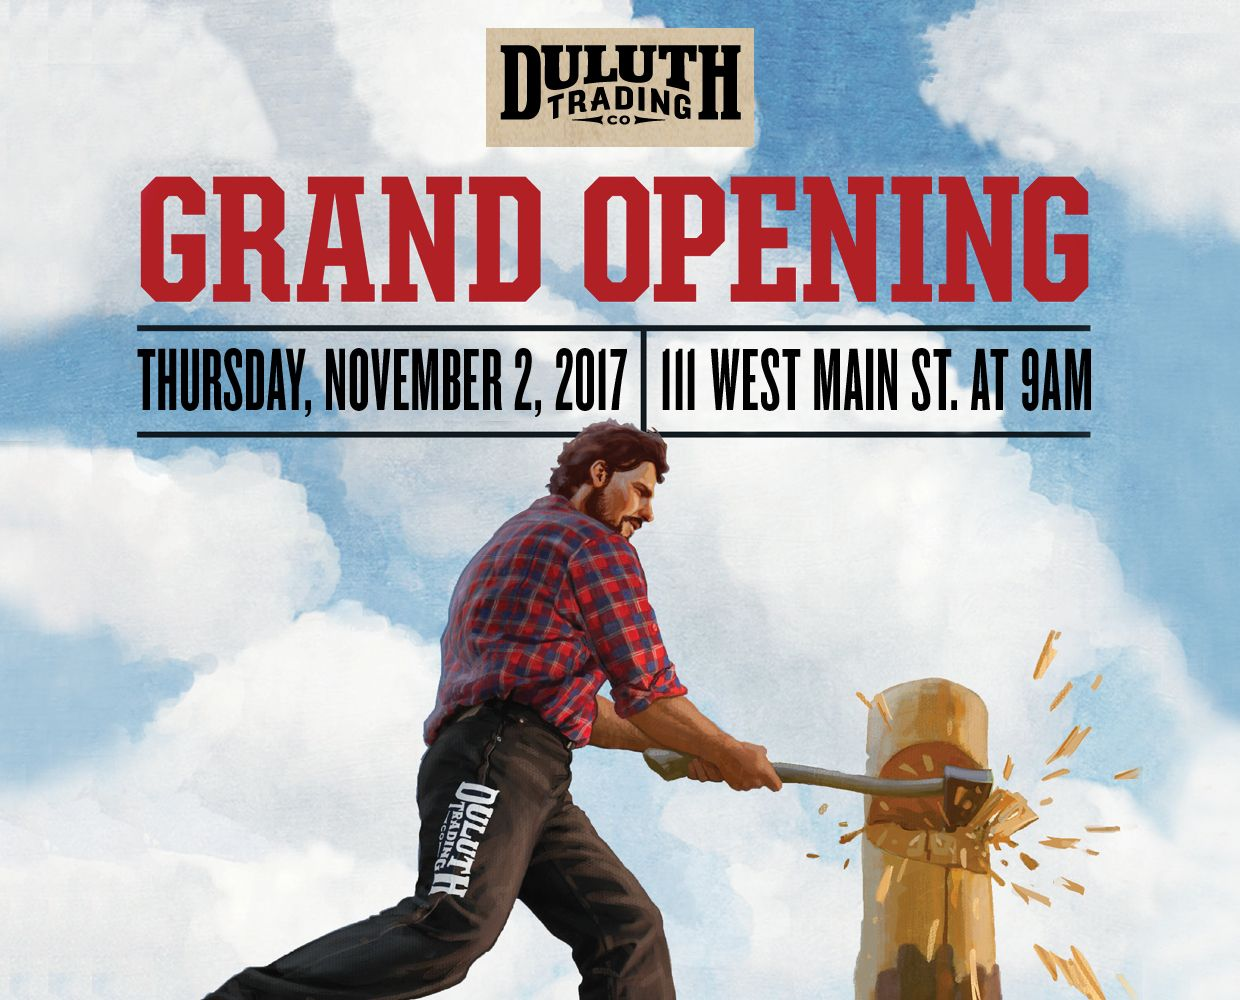 November 2 - Duluth Trading Co. Grand Opening image